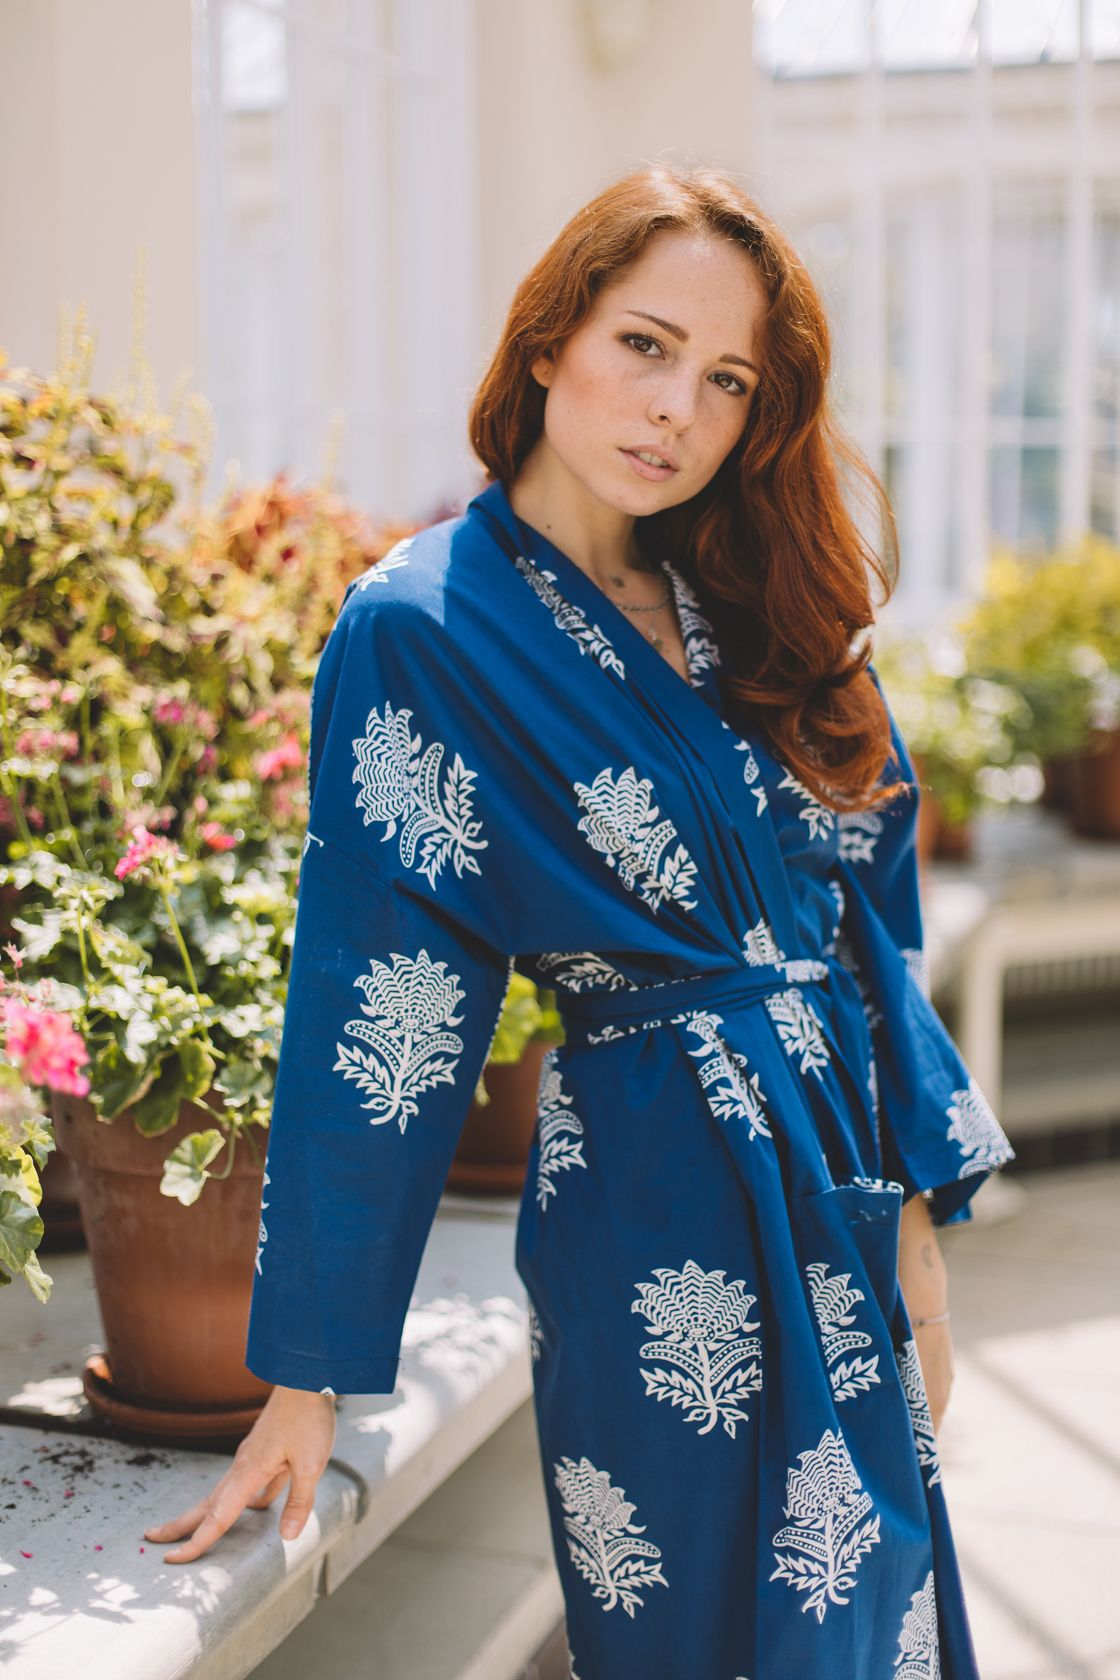 Tiger Flower White on Dark Blue Dressing Gown